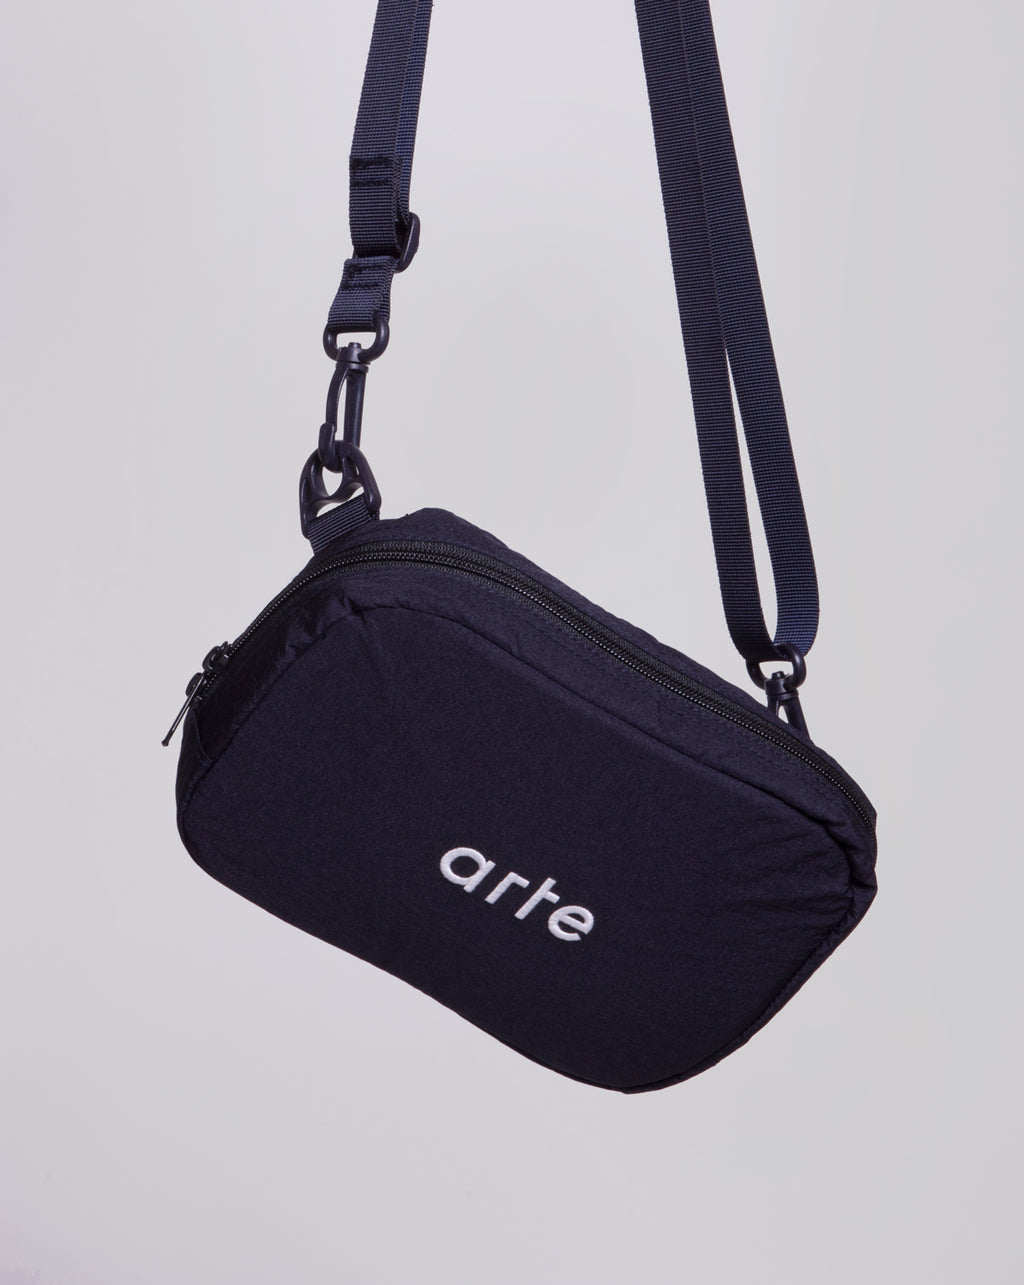 Baka Shoulder Bag